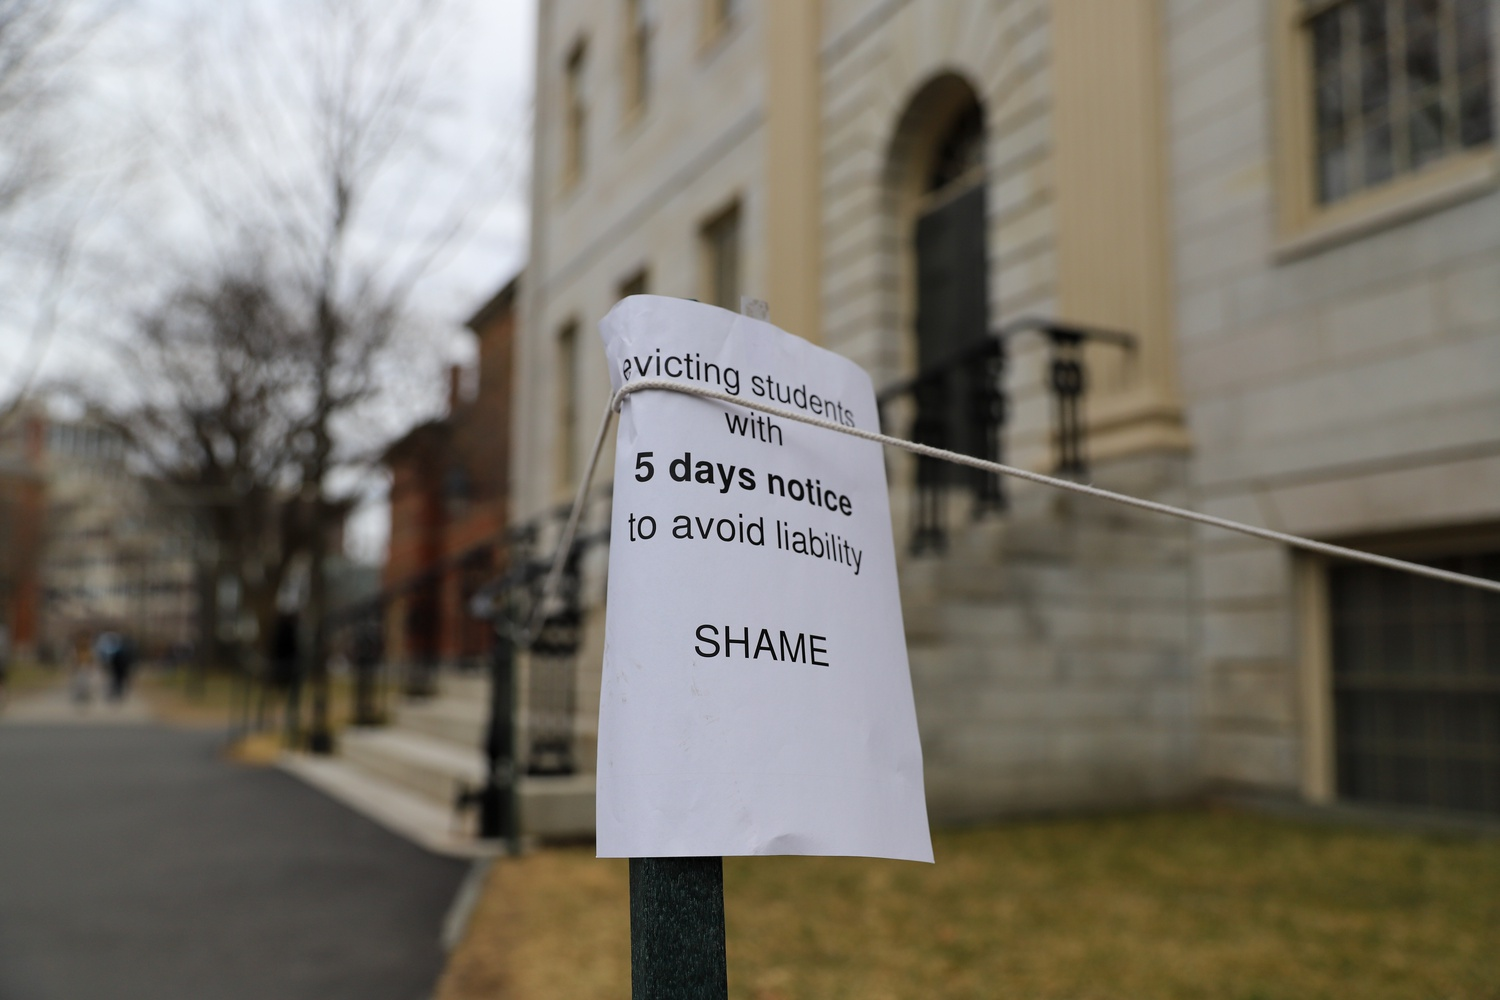 On Tuesday morning, Harvard University announced it would transition to virtual instruction for graduate and undergraduate classes after spring break. Harvard College students must vacate their houses and dorms by March 15.